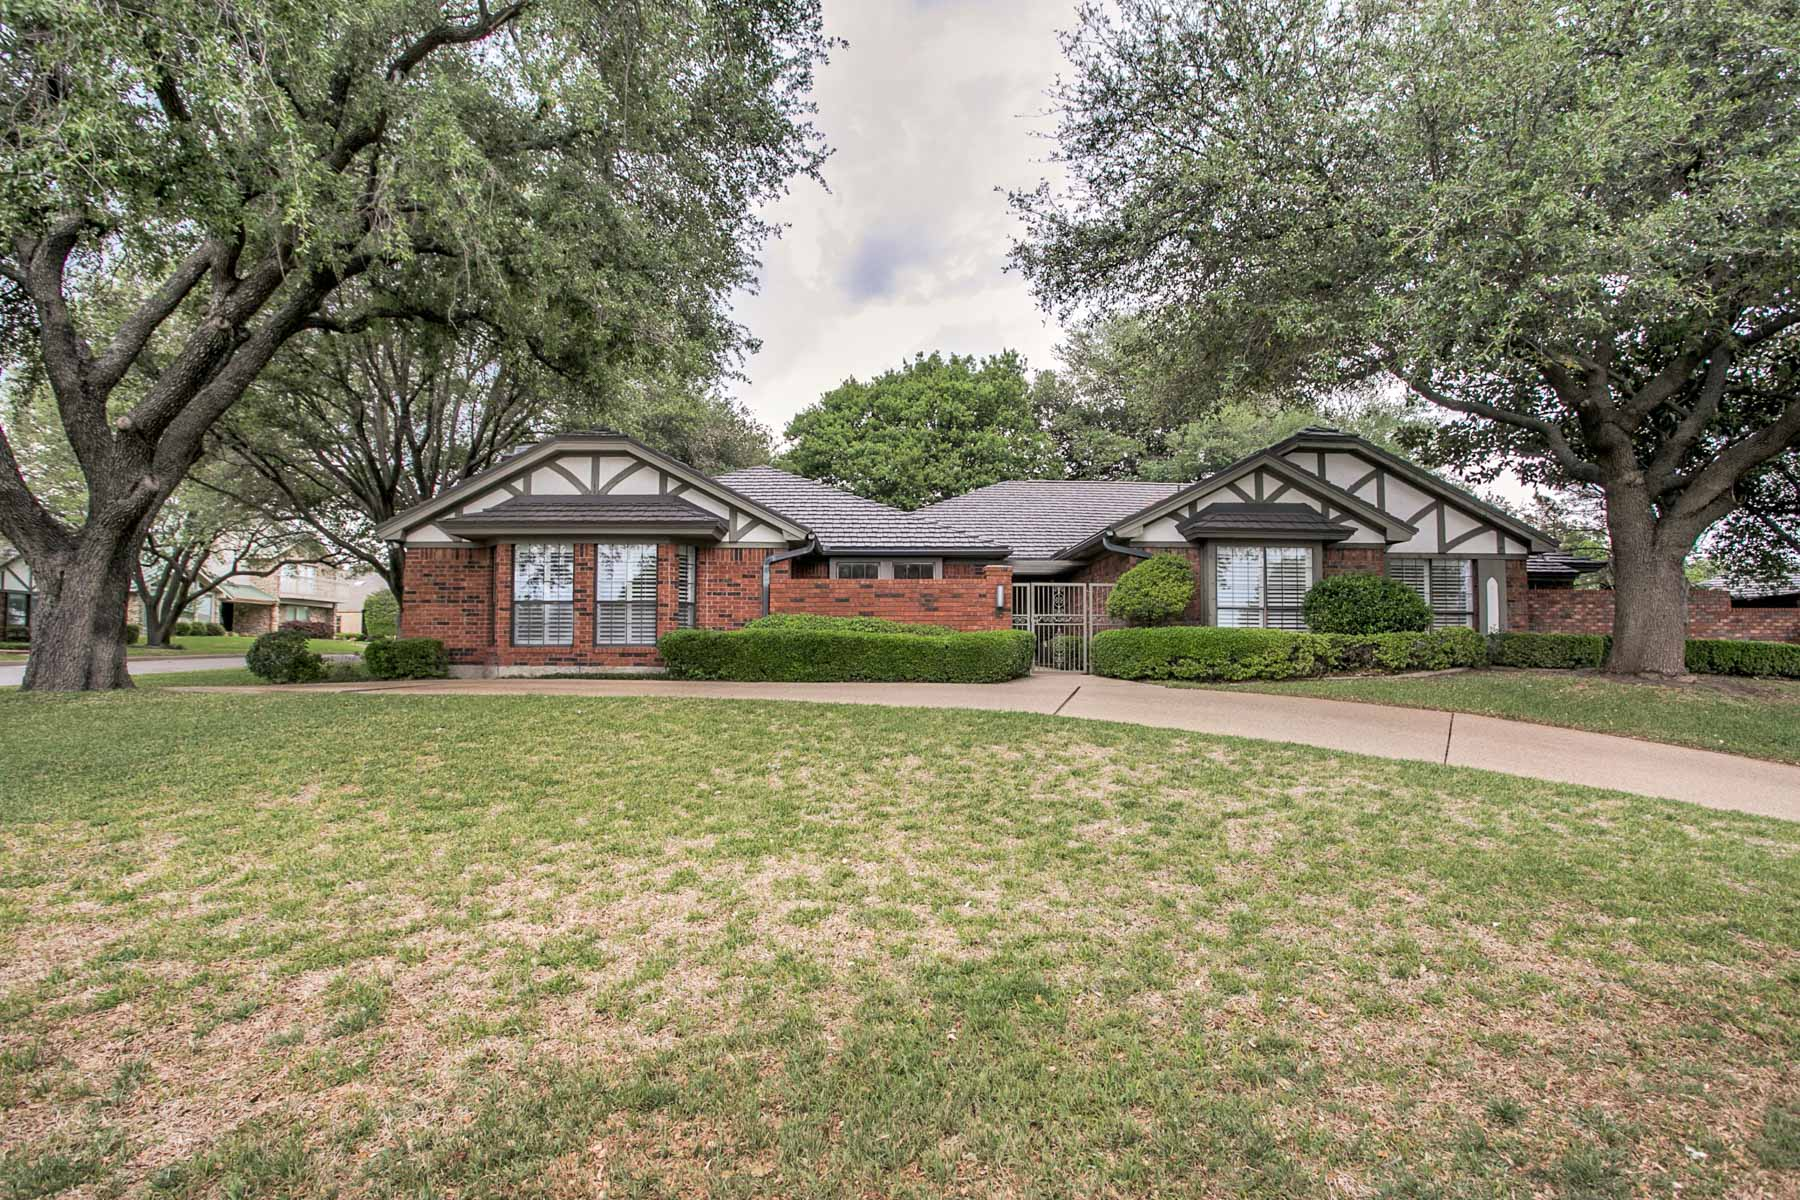 Maison unifamiliale pour l Vente à Hidden Gem in Ridglea Hills 6658 Mike Ln Ct Fort Worth, Texas, 76116 États-Unis